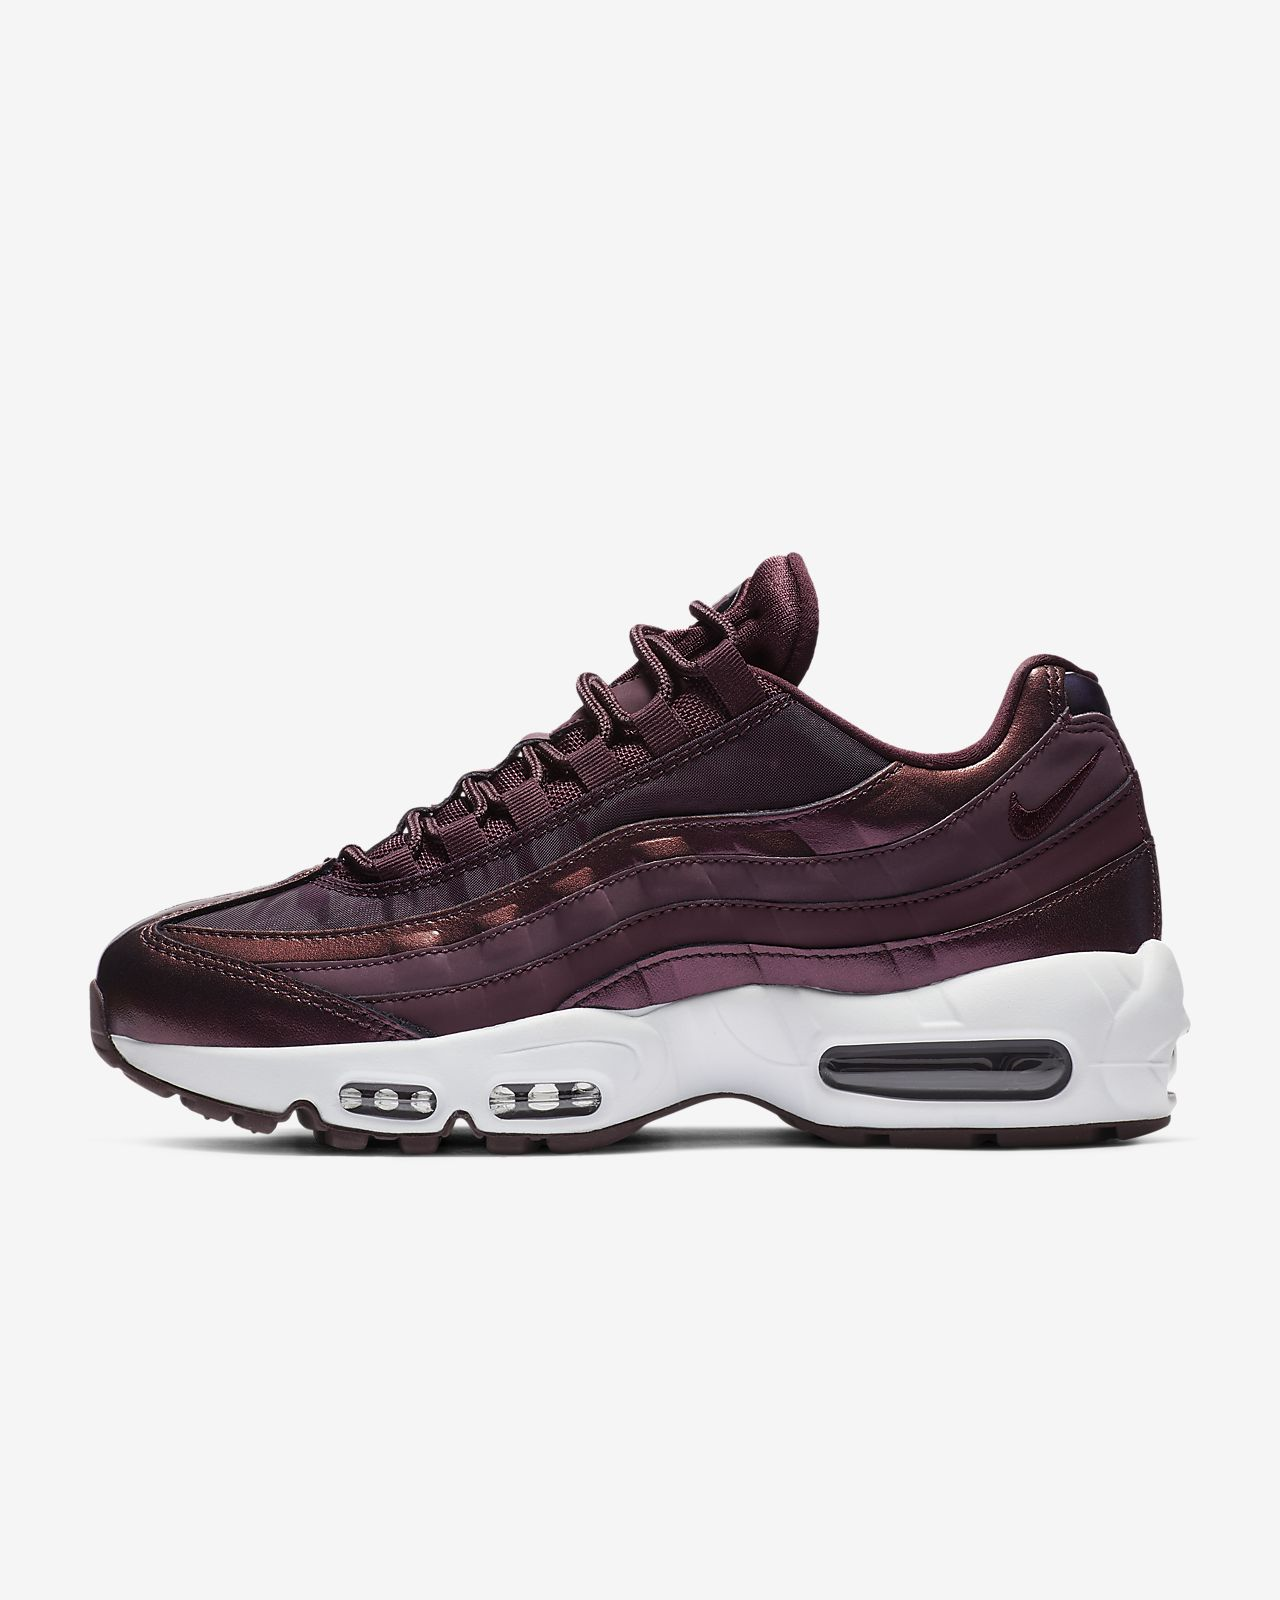 Nike Air Max 95 Lux Women's Shoe